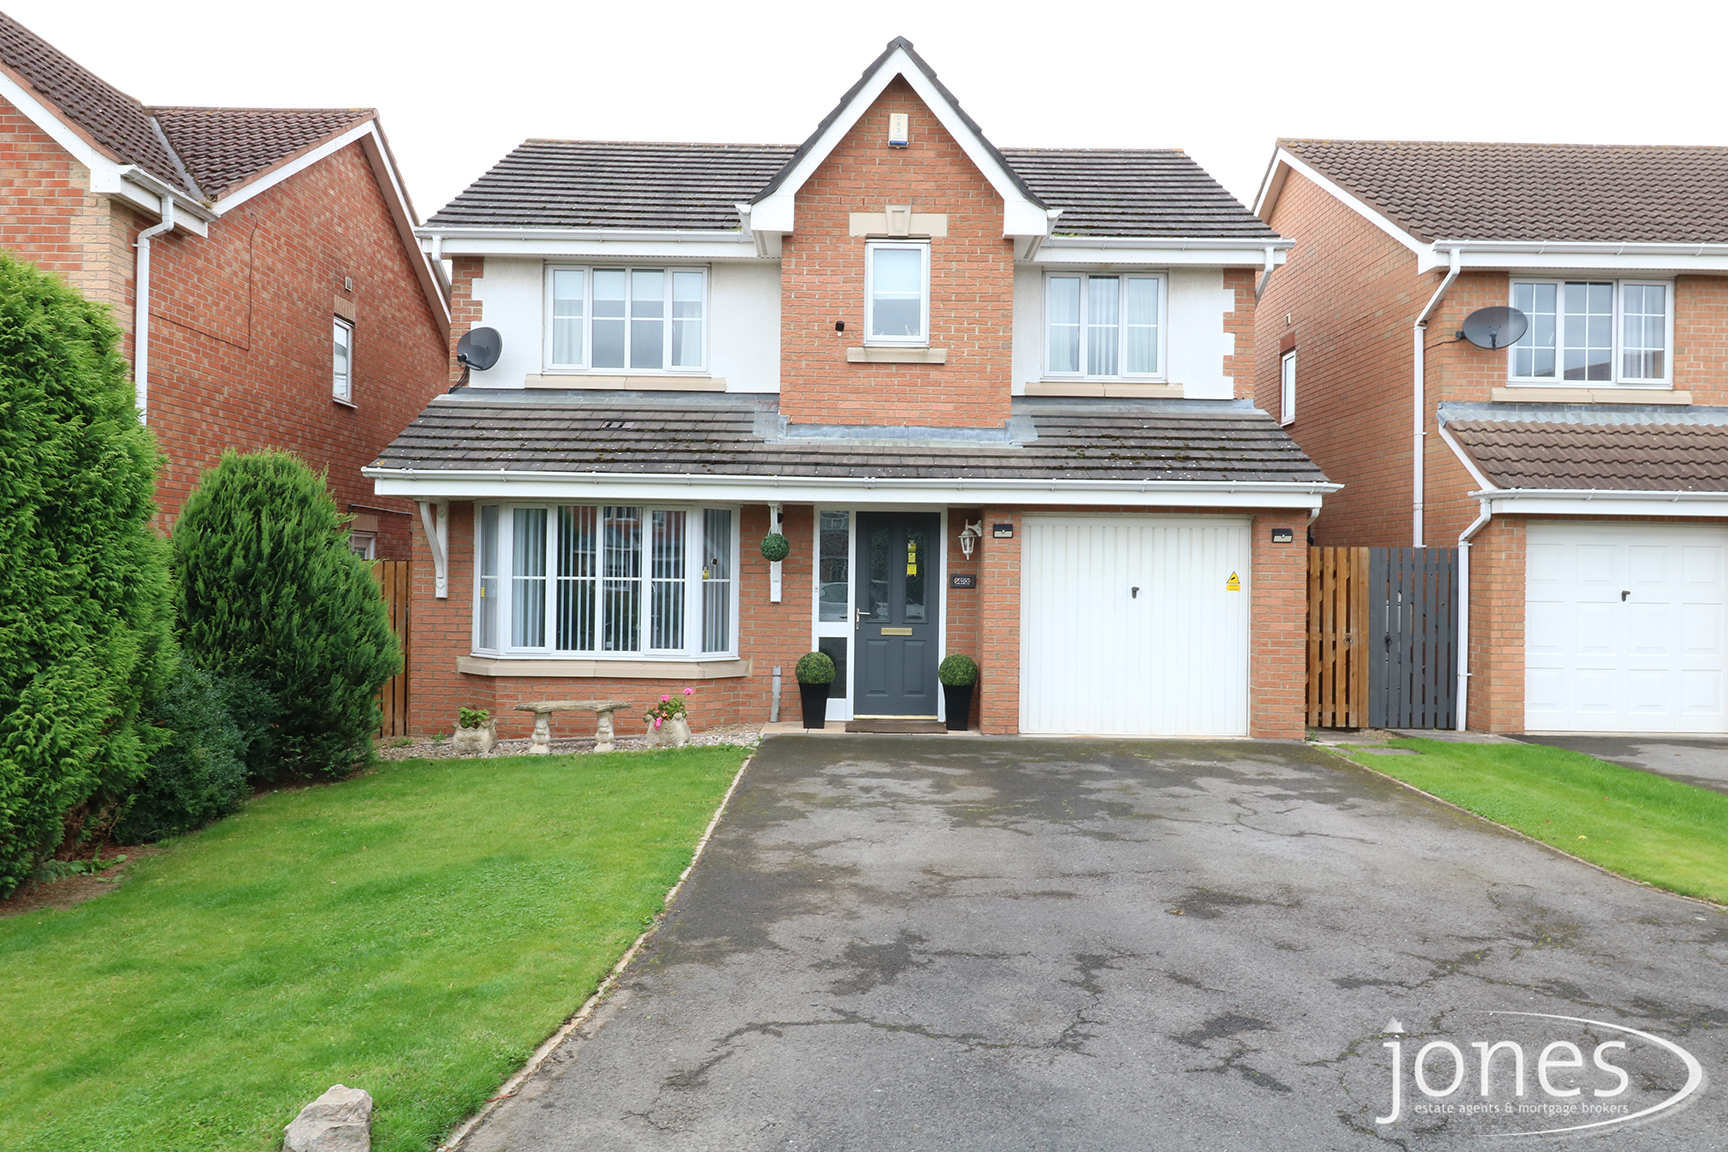 Home for Sale Let - Photo 21 West End Way , Low Hartburn,Stockton on Tees,TS18 3UA